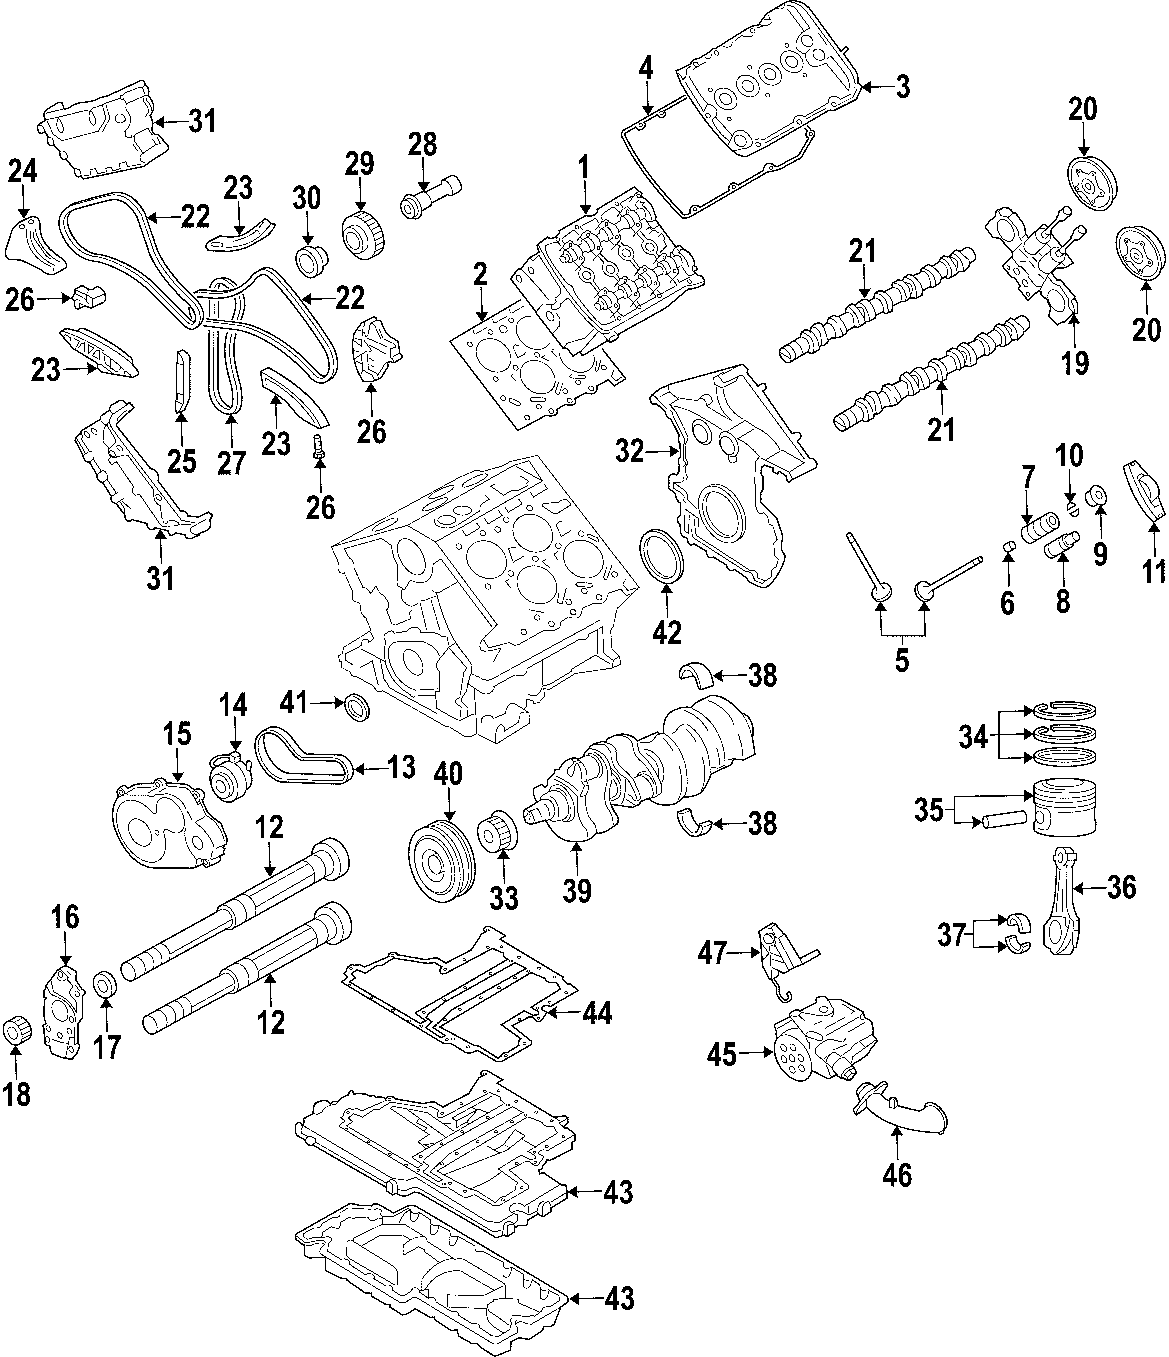 Volkswagen Cross Sport Engine Crankshaft Seal Liter